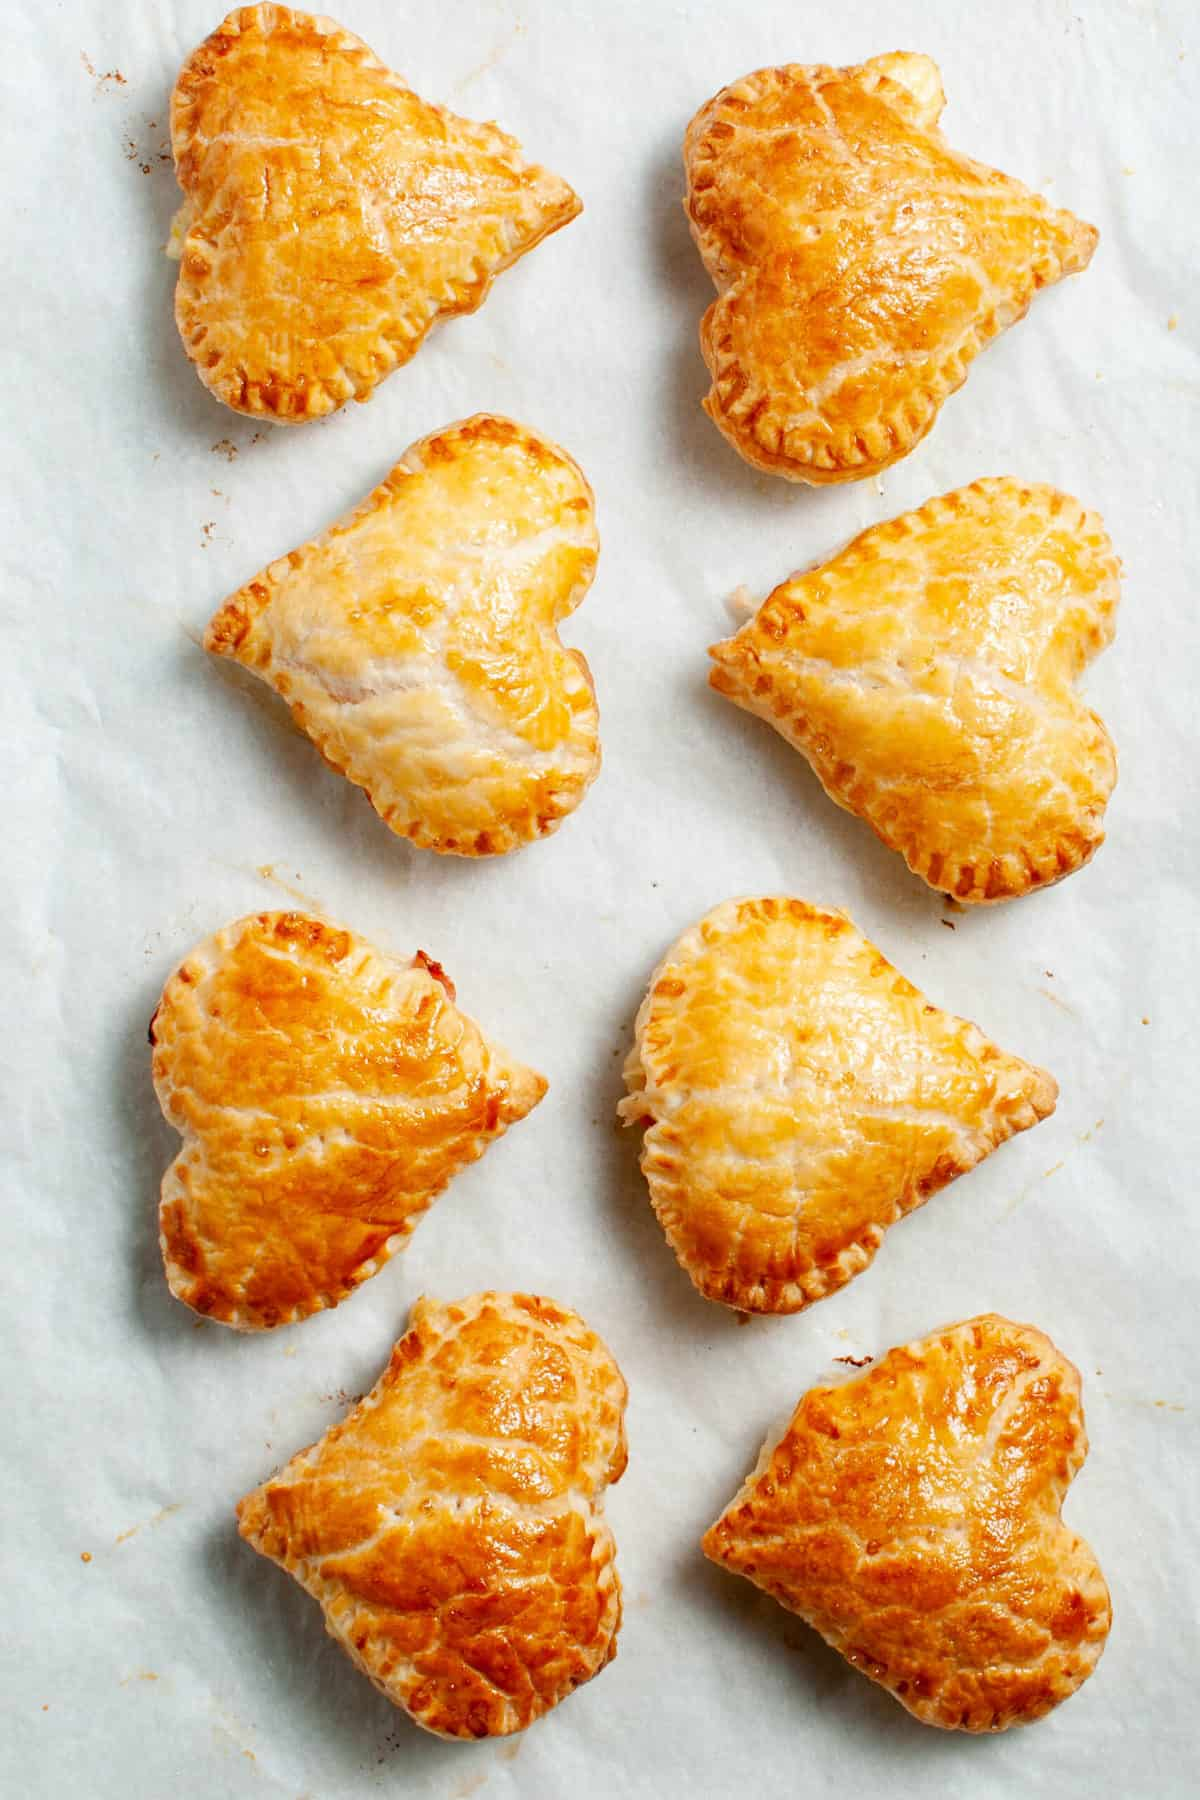 eight pastry hearts, having been baked, sitting on a piece of baking parchment.